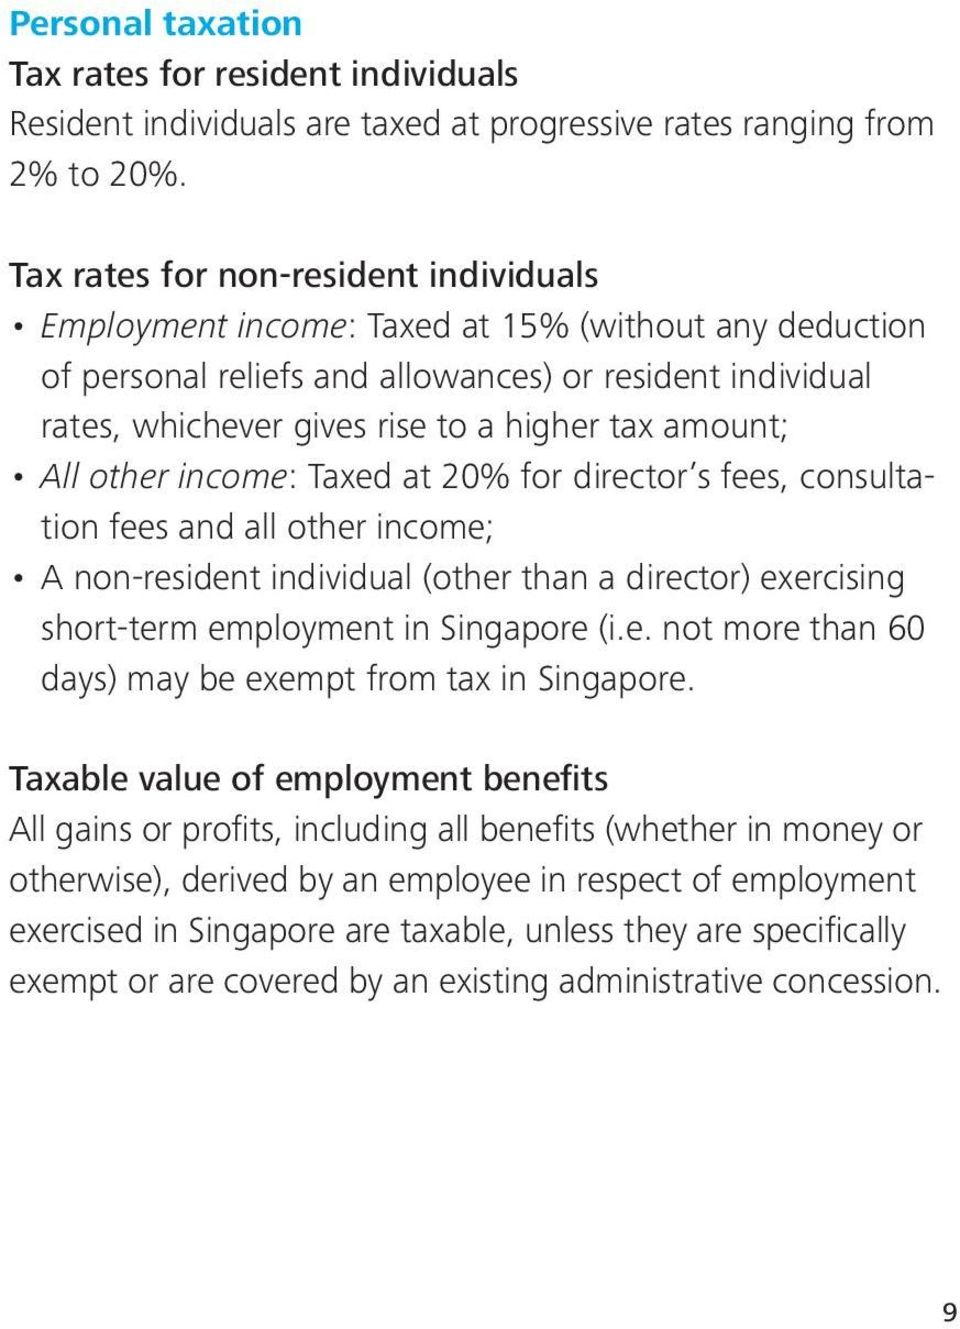 amount; All other income: Taxed at 20% for director s fees, consultation fees and all other income; A non-resident individual (other than a director) exercising short-term employment in Singapore (i.